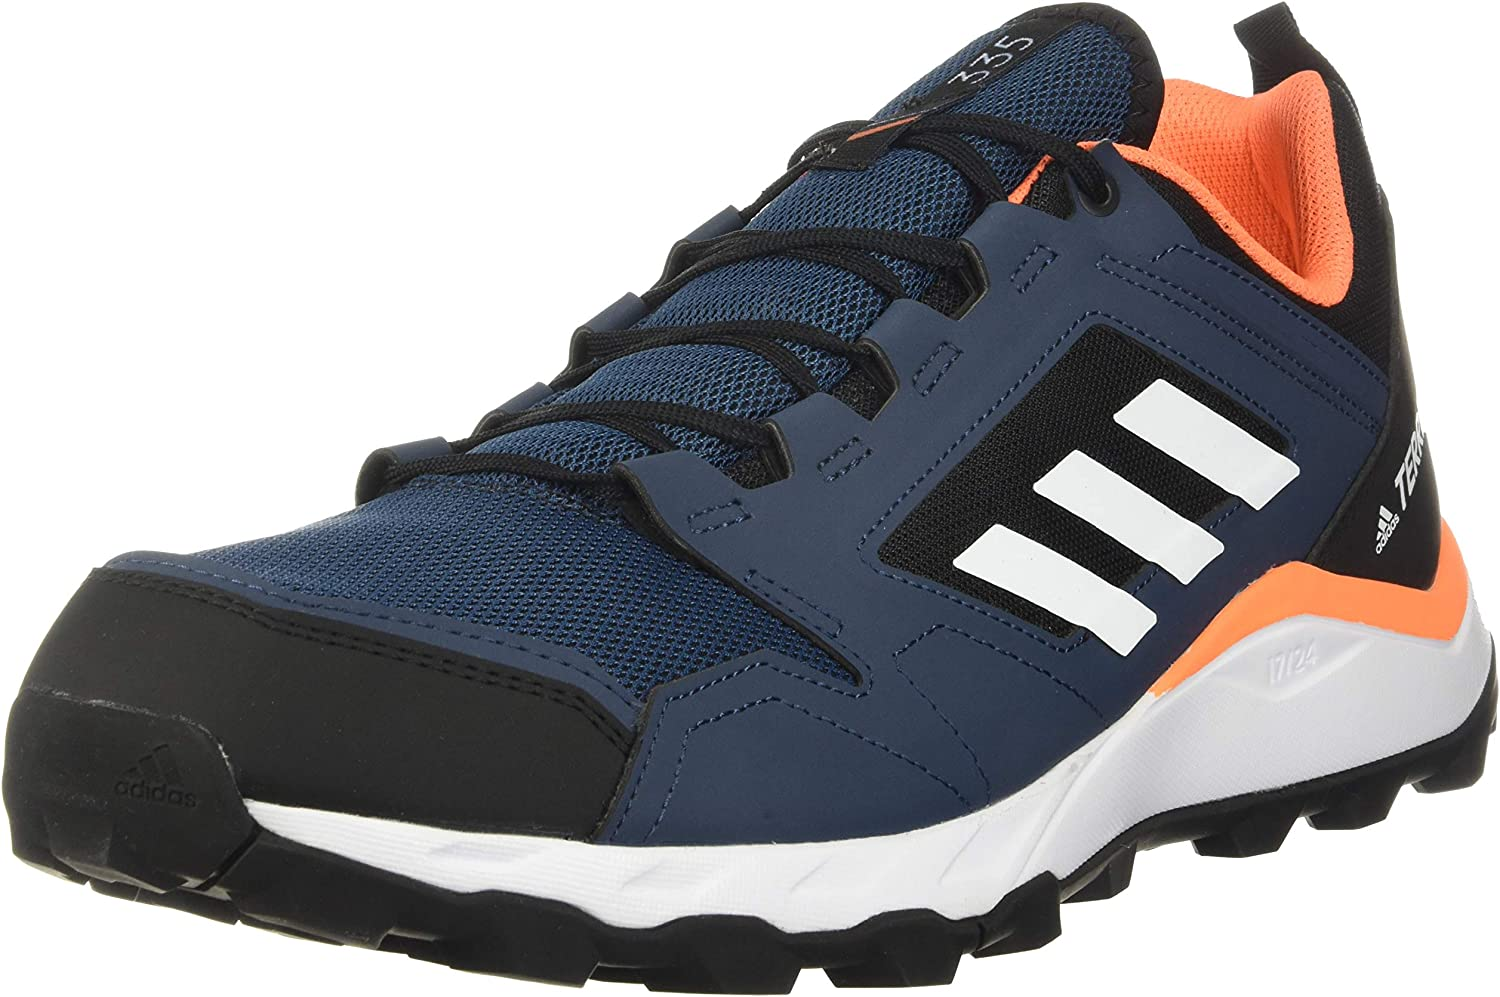 Manufacturer direct delivery adidas Men's Climbing US:10.5 Ranking TOP1 Shoes